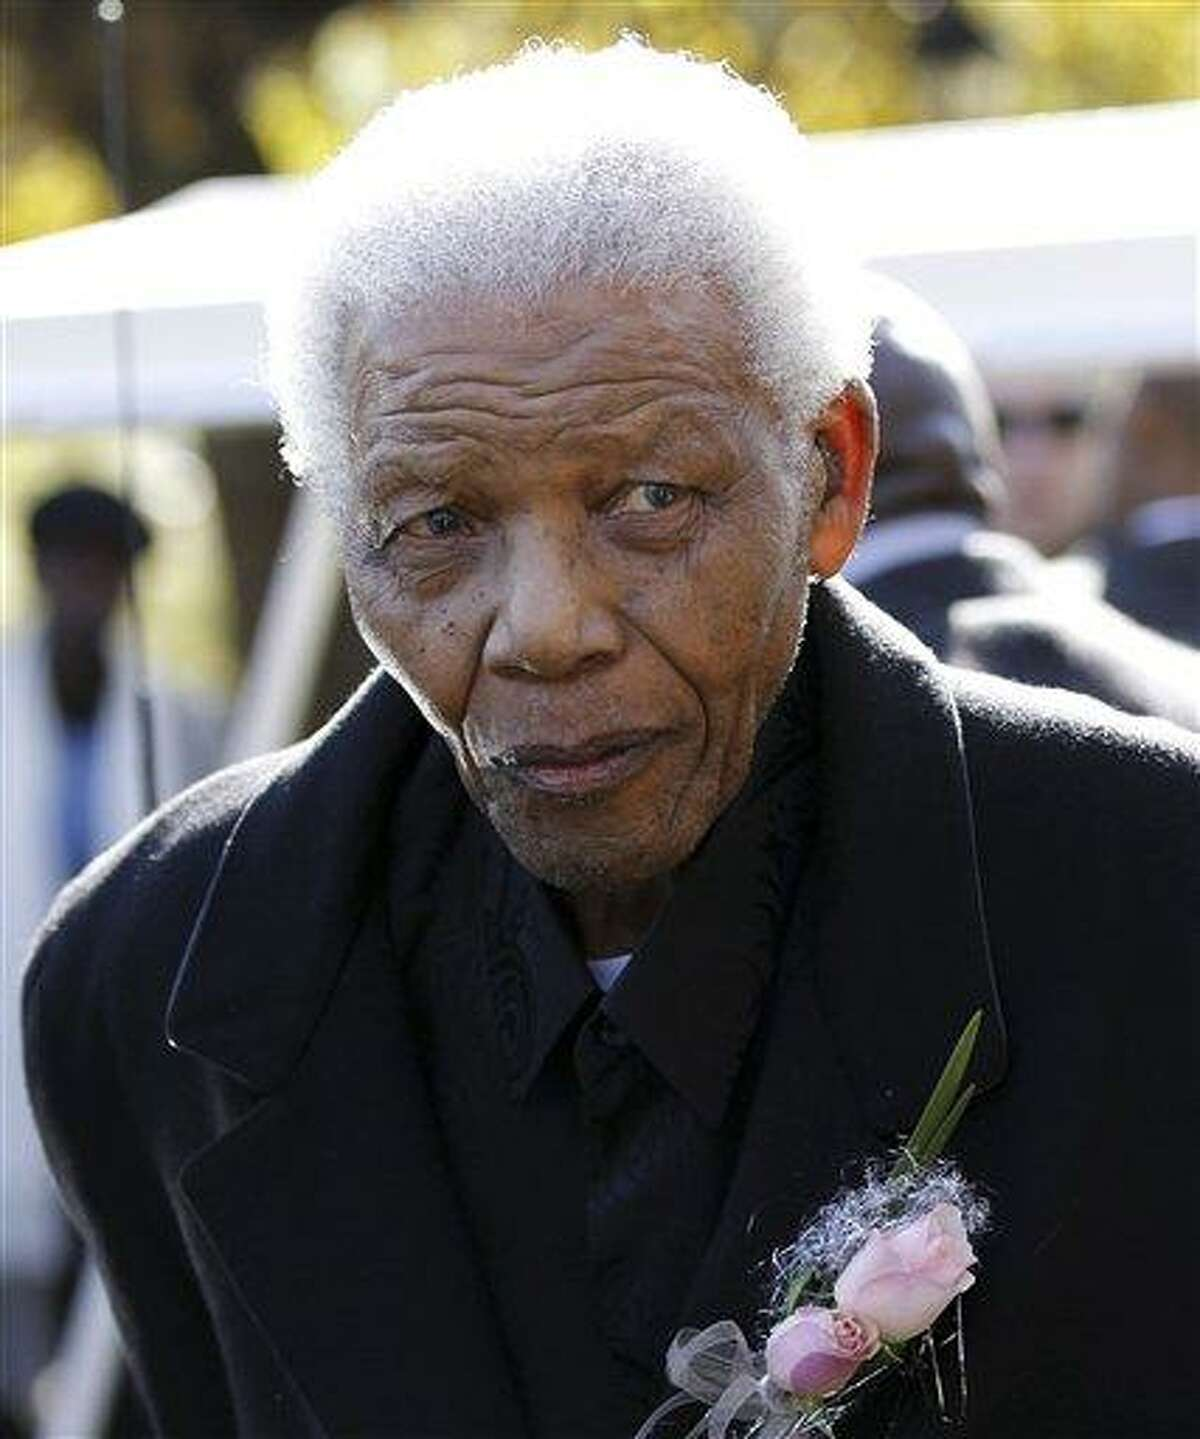 FILE -In this June 17, 2010 file photo, former South African President, Nelson Mandela leaves the chapel after attending the funeral of his great-granddaughter Zenani Mandela in Johannesburg, South Africa. South African President Jacob Zuma says that former President Nelson Mandela has been admitted to hospital in Pretoria to undergo tests. Zuma issued a statement Saturday, Dec. 8, 2012 saying that Mandela is